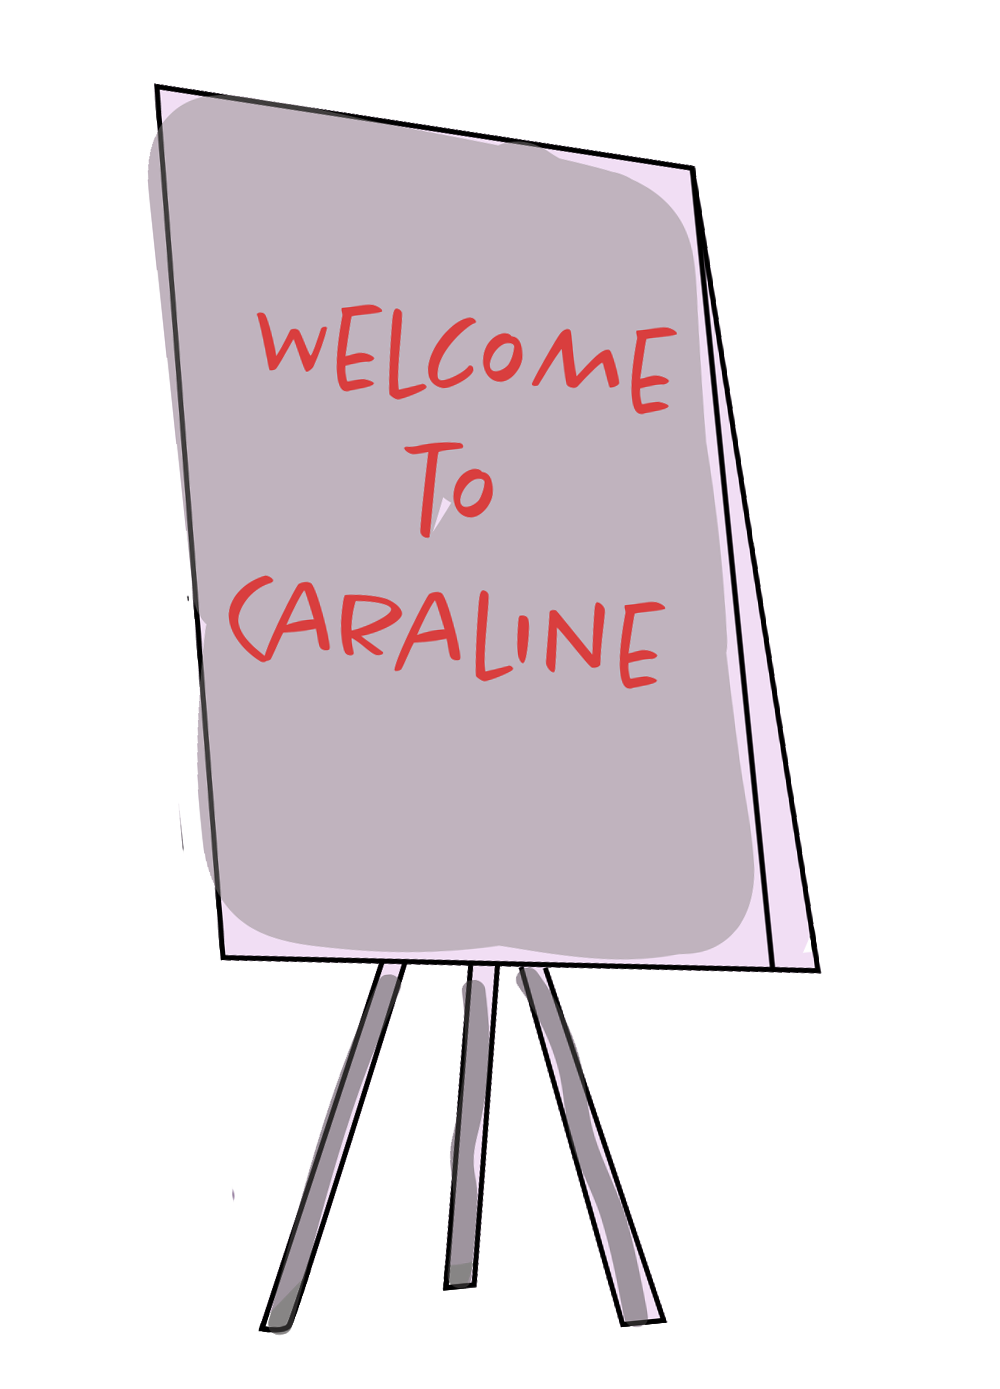 Welcome to Caraline